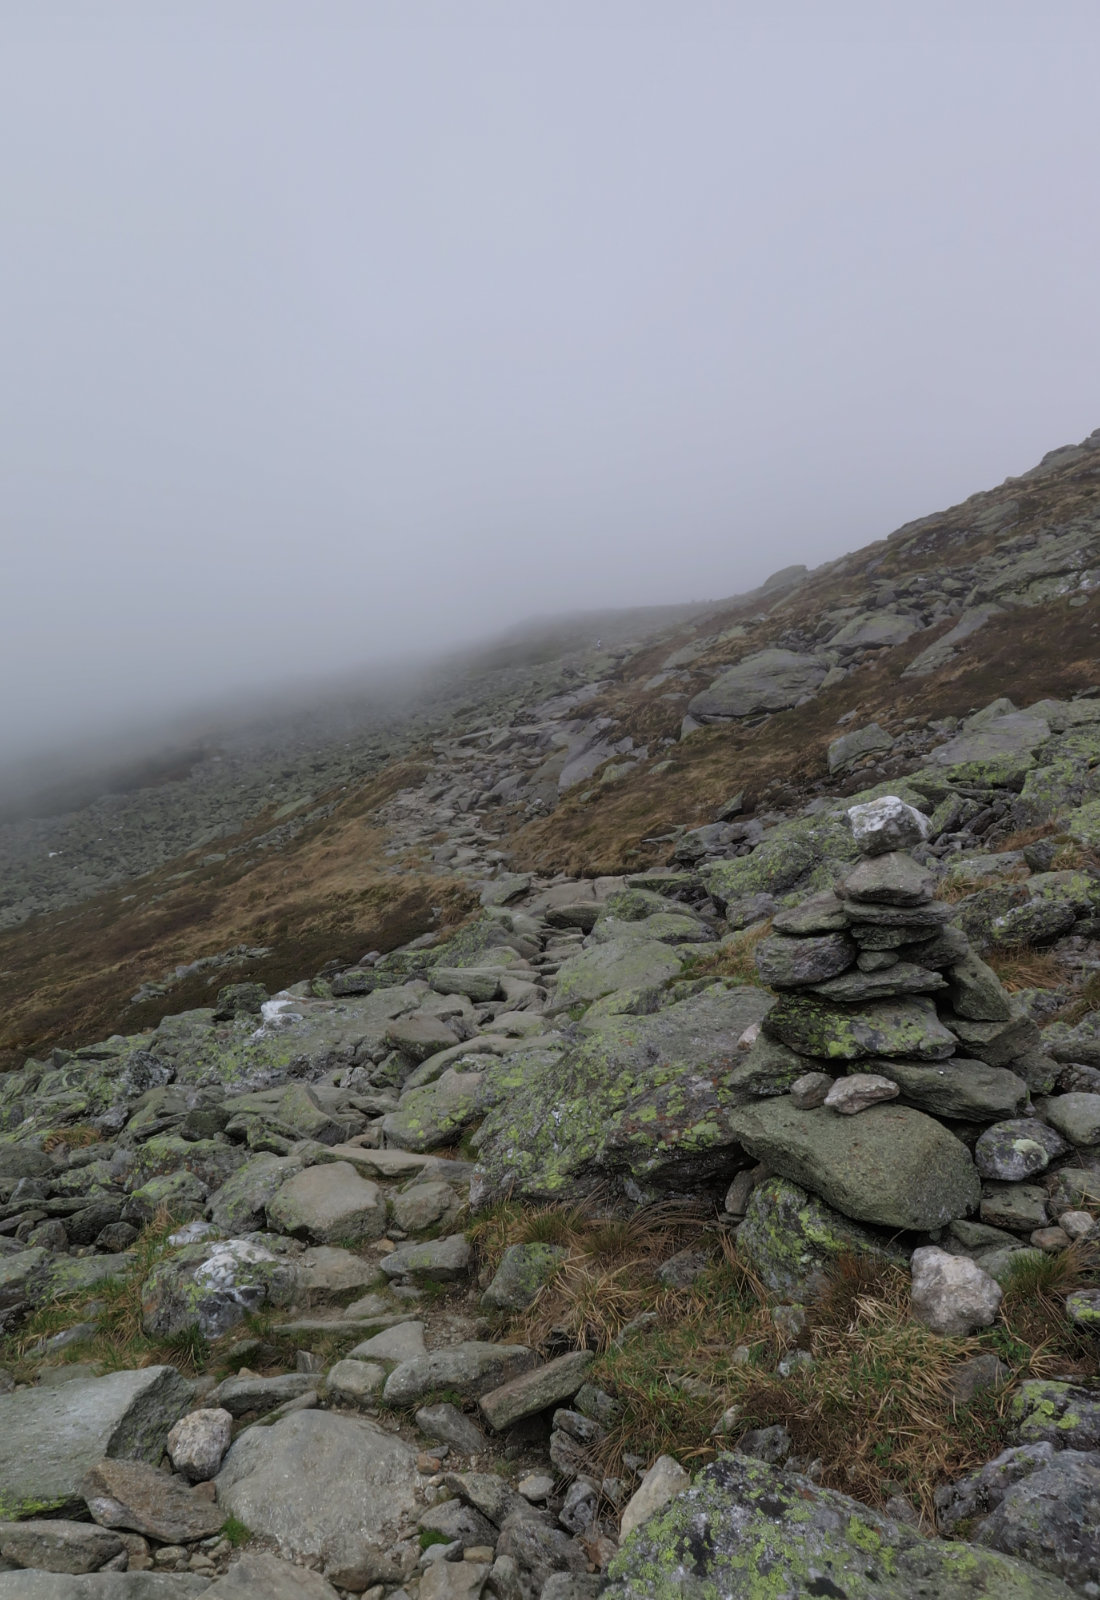 20180602-Washington-cloudy-cairn